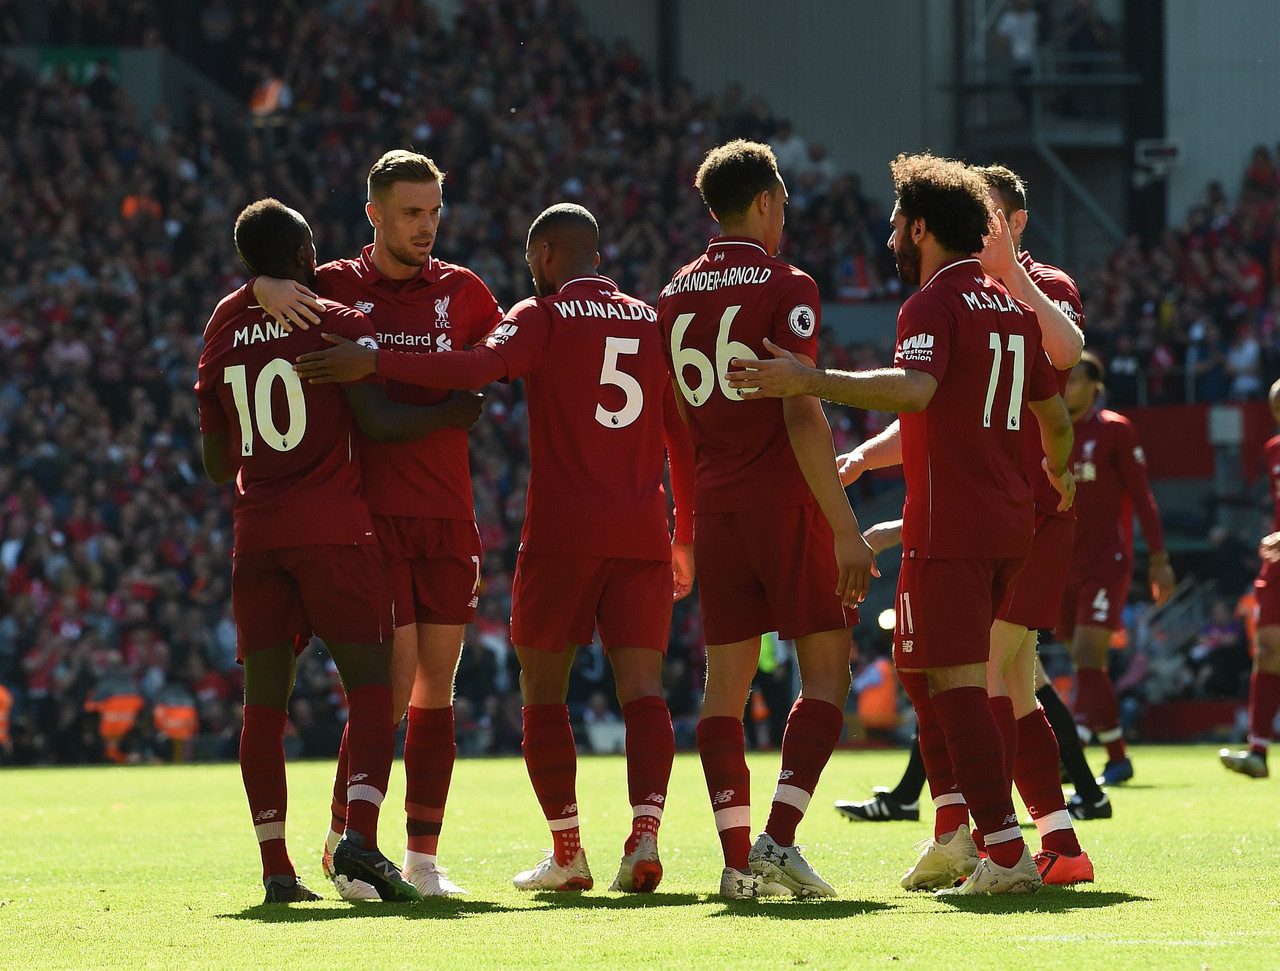 Liverpool 2-0 Wolves: Mane double secures win but 29 year wait for league title goes on